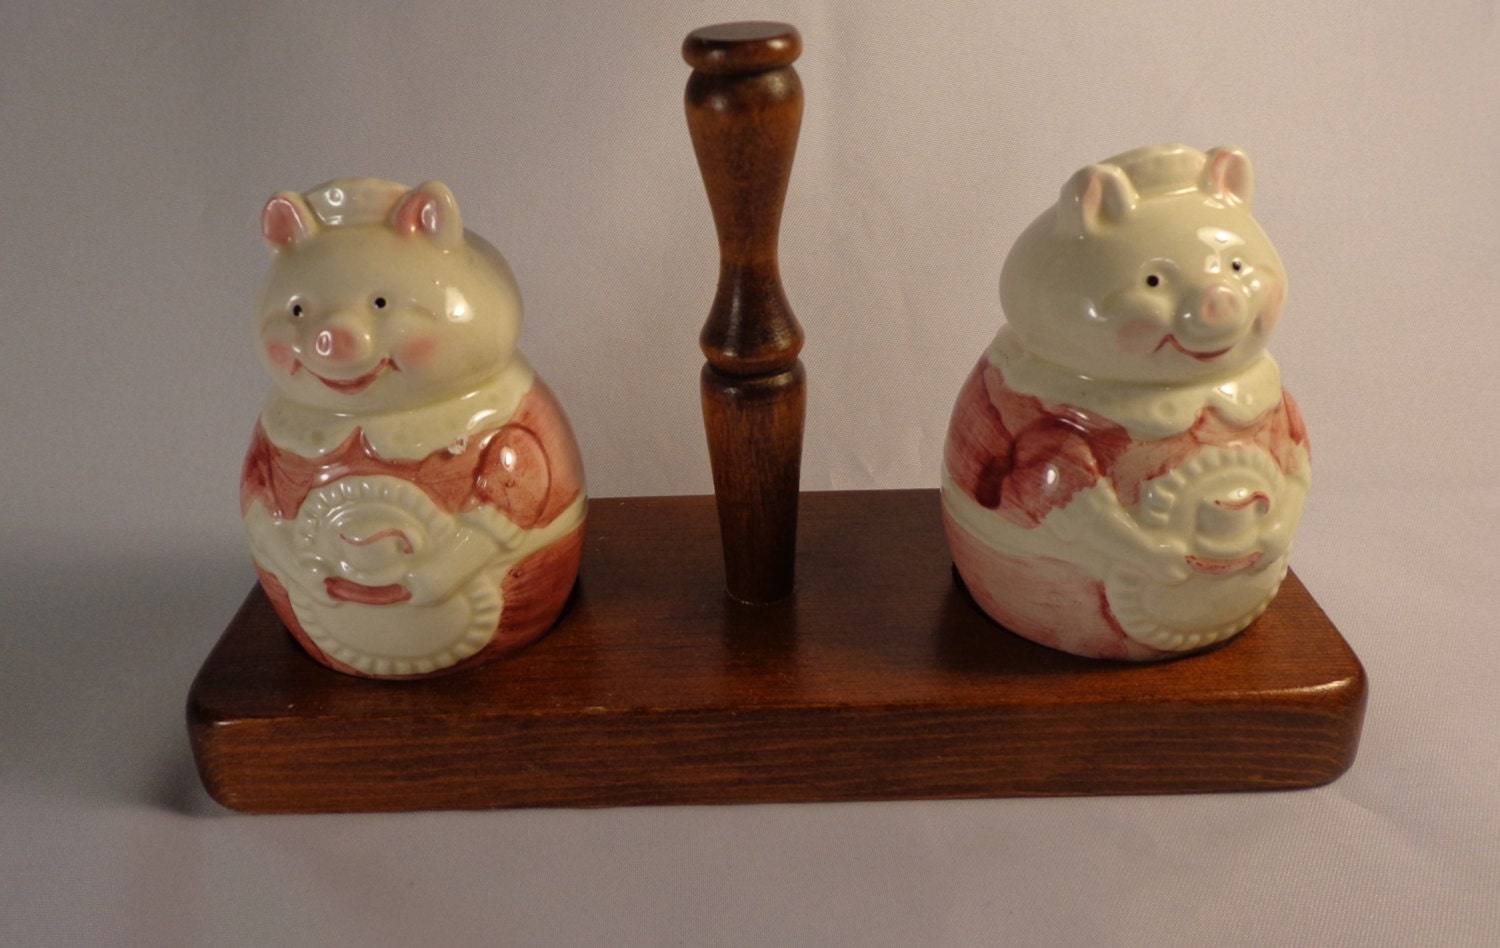 Salt And Pepper Shaker Set Cute Pigs On A Wooden Tray